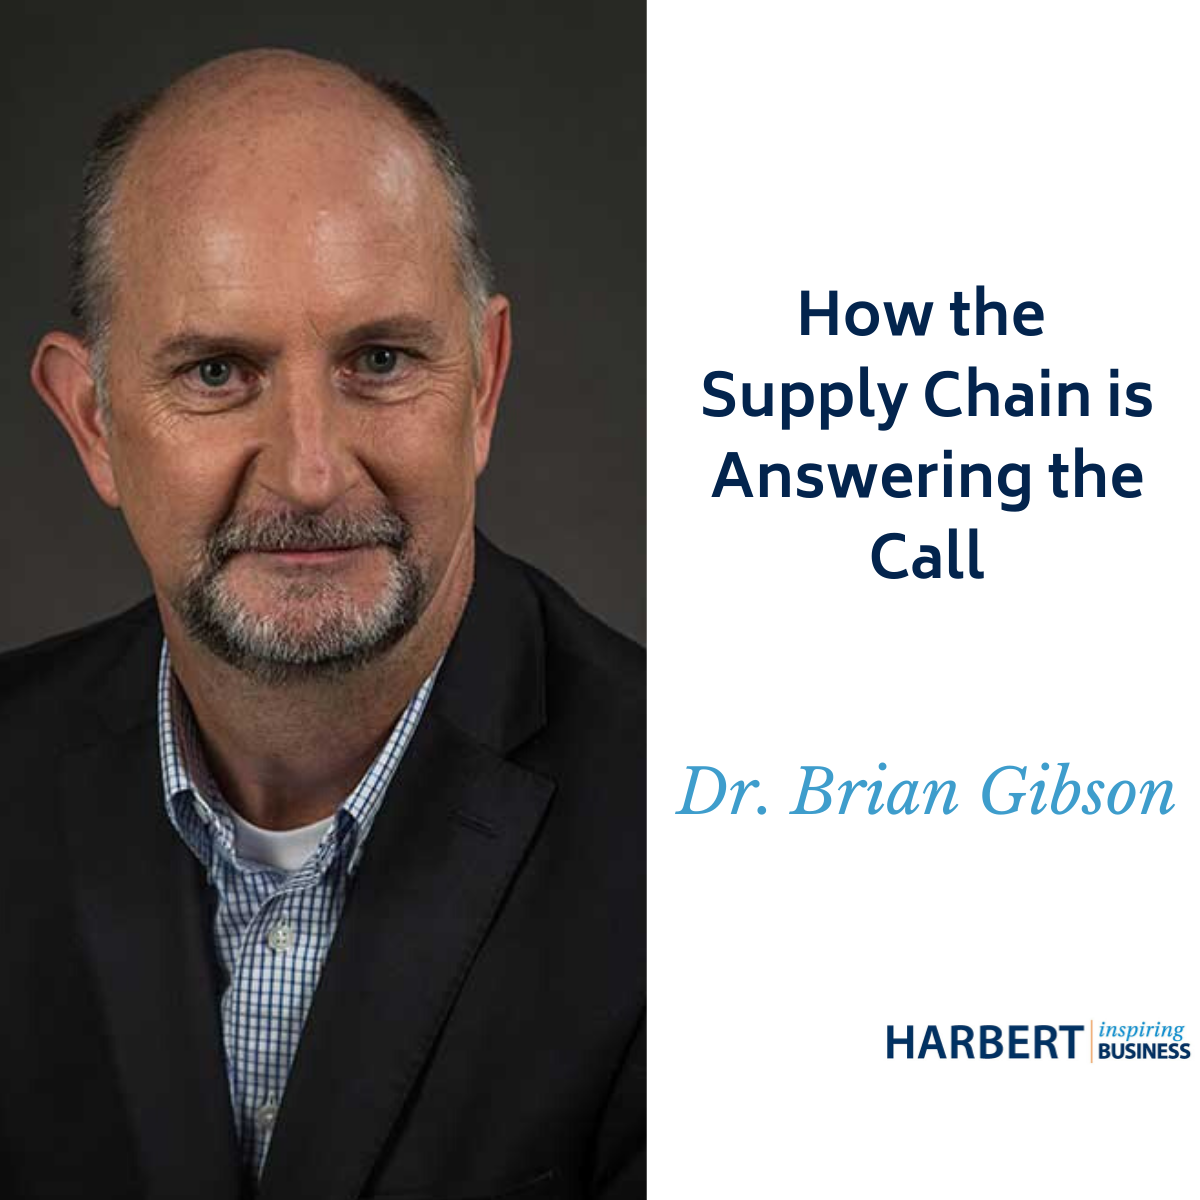 Brian Gibson: Supply chains are resilient, they bend but typically don't break. Adjustments are being made by companies to continue serving demand.